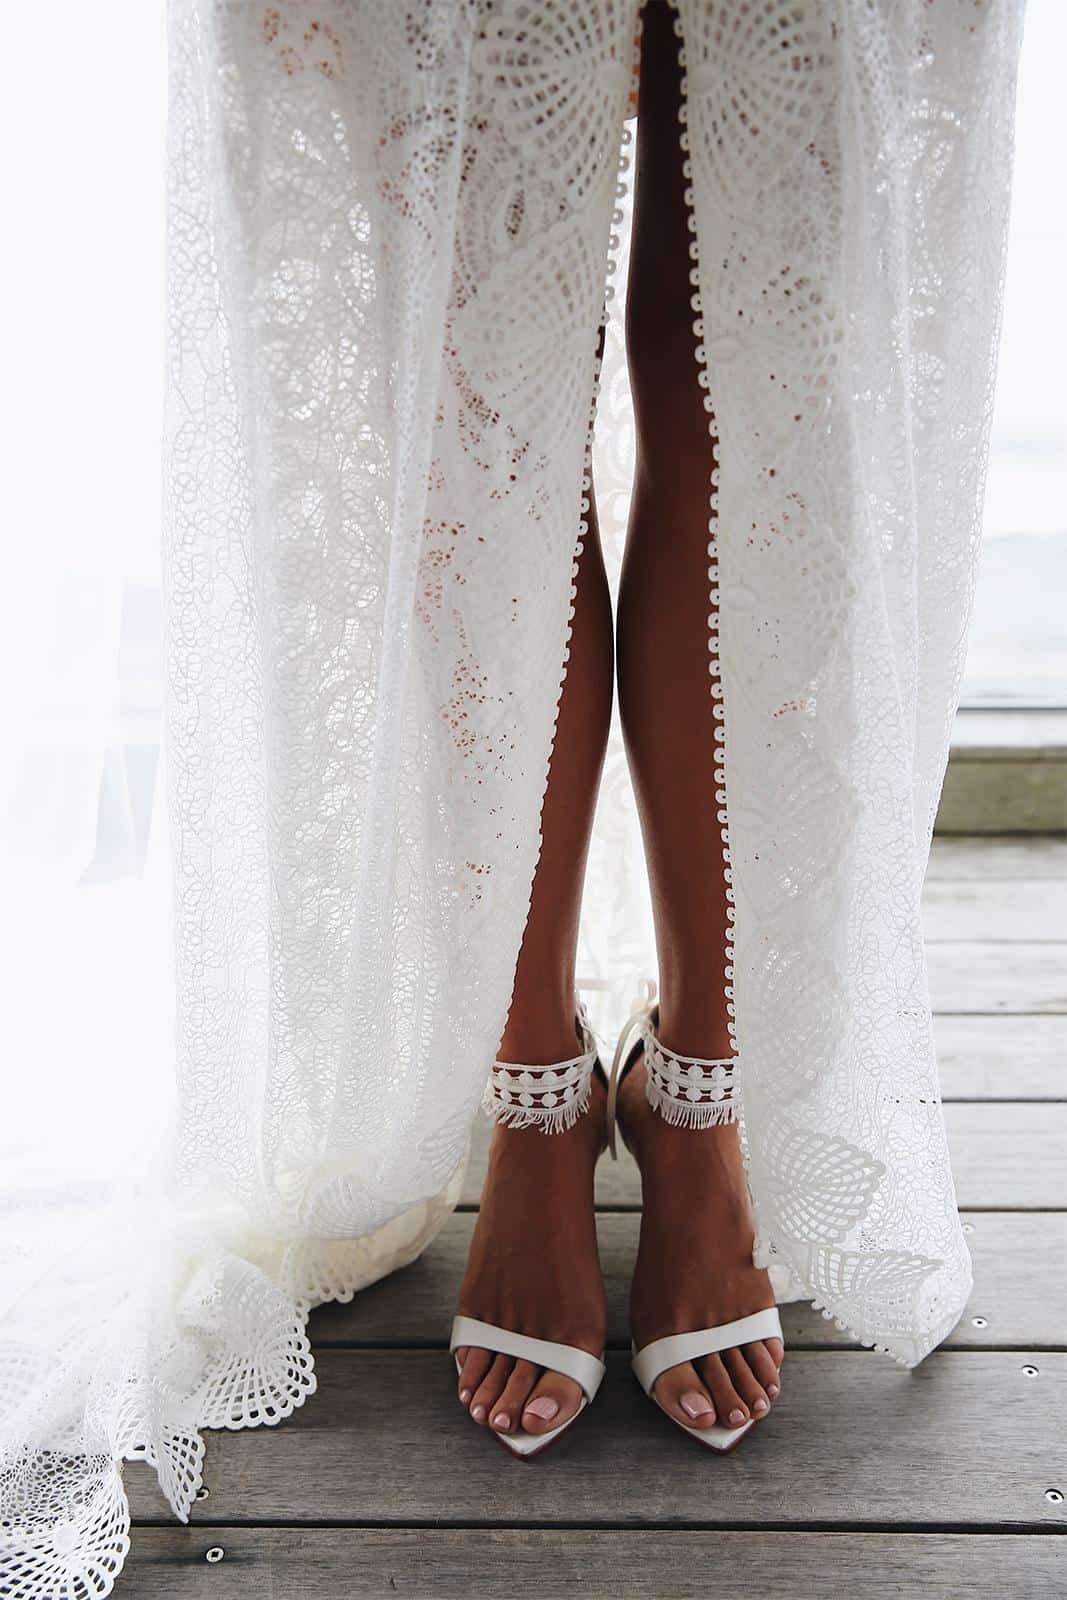 Bohemian Wedding Dress Inspiration French Lace Dress Handmade by Grace Loves Lace Mai